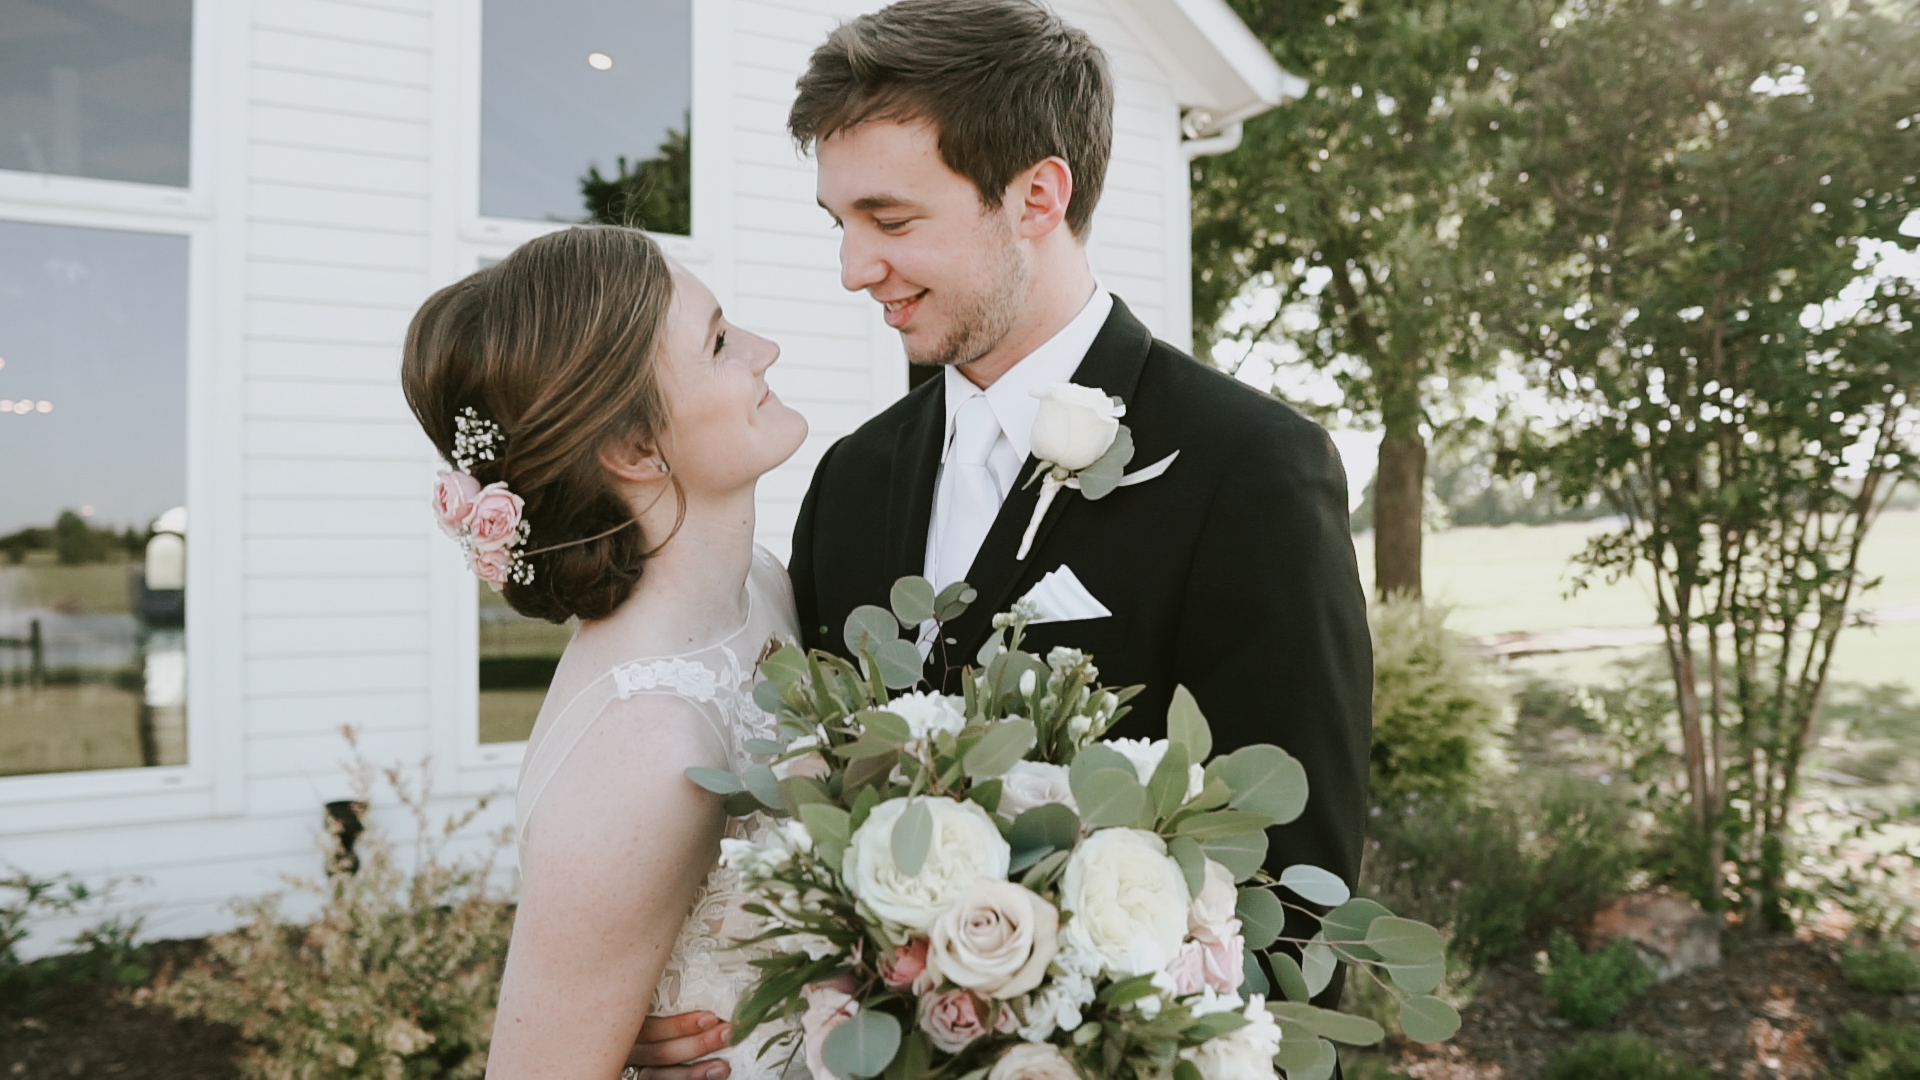 Madi + Zach | Van Alstyne, Texas | Rustic Grace Estate